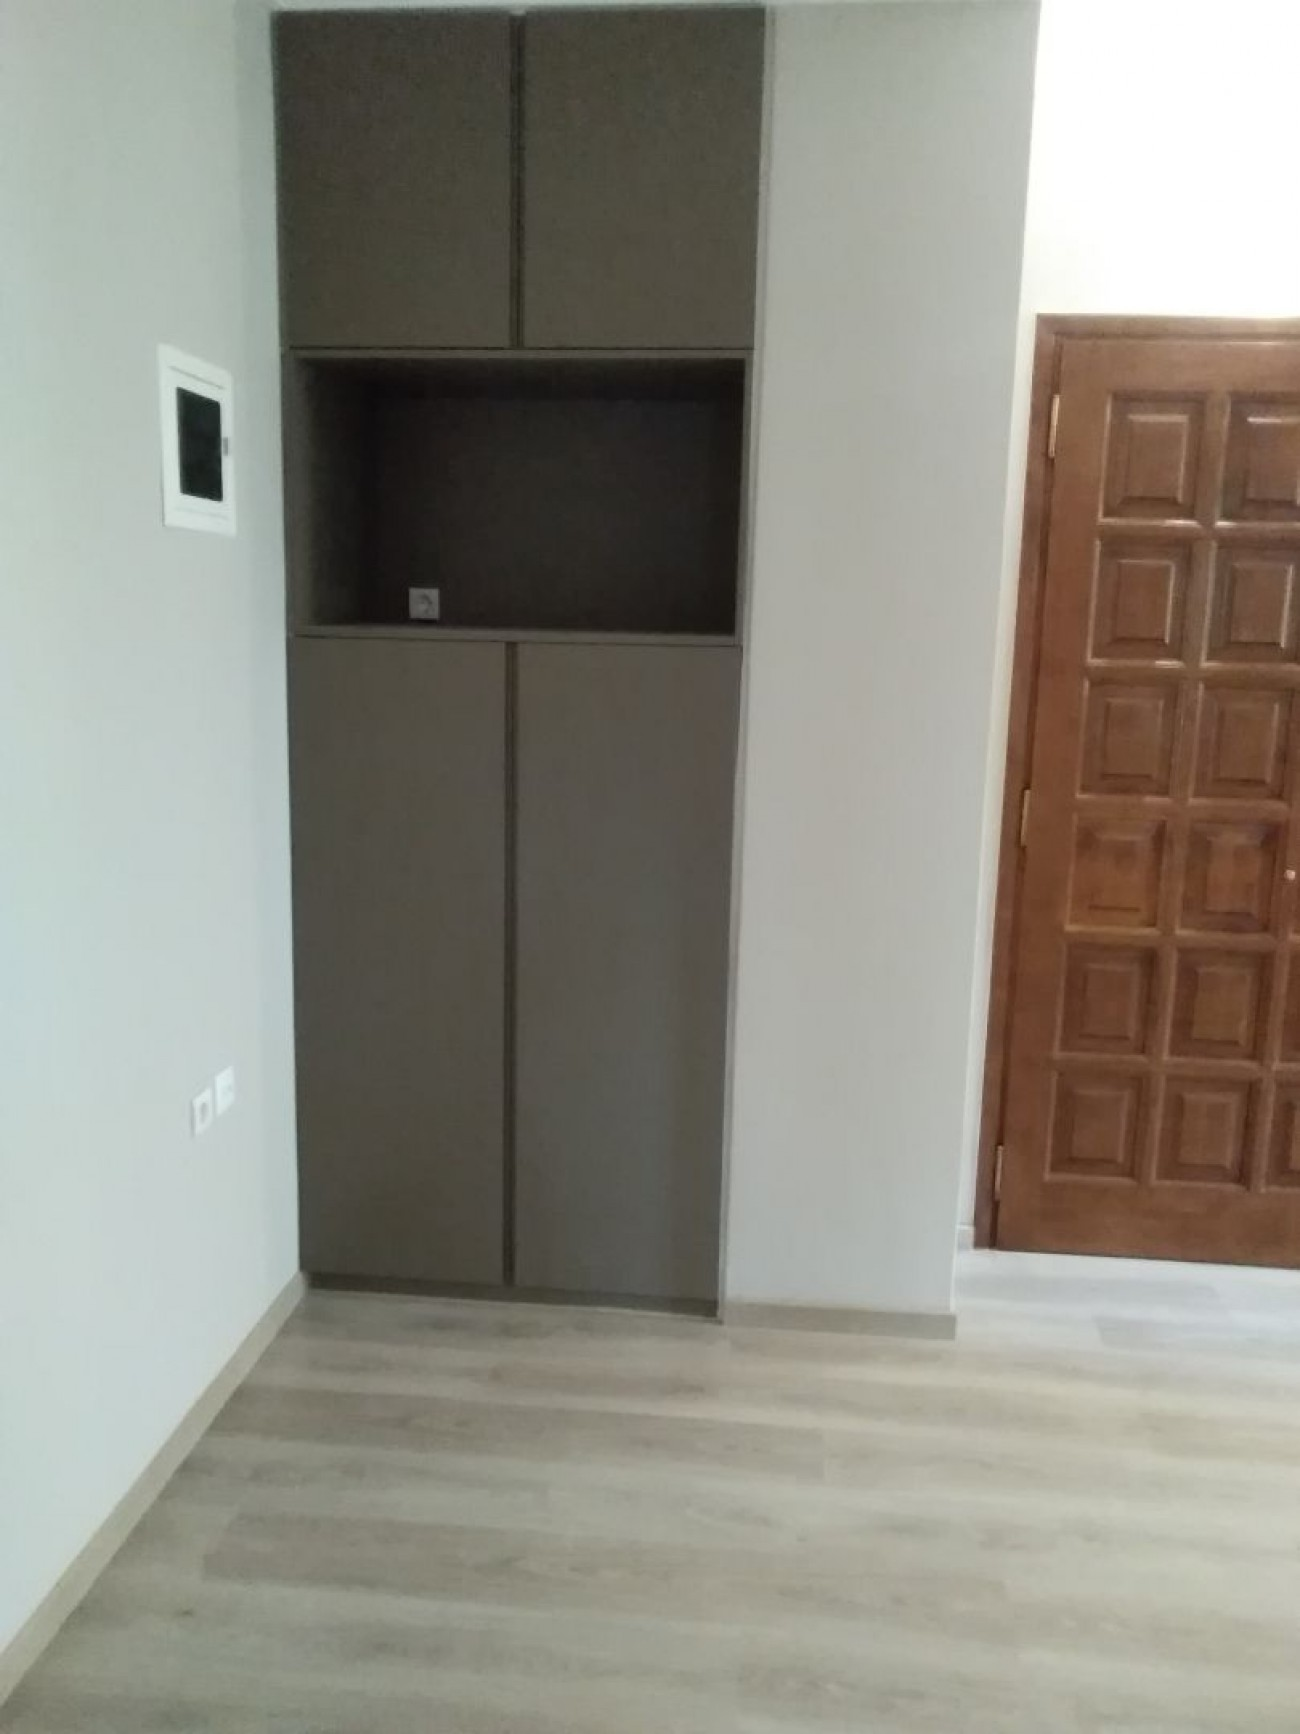 Apartment for Rent in Peyki, North & East Region of Athens, Greece